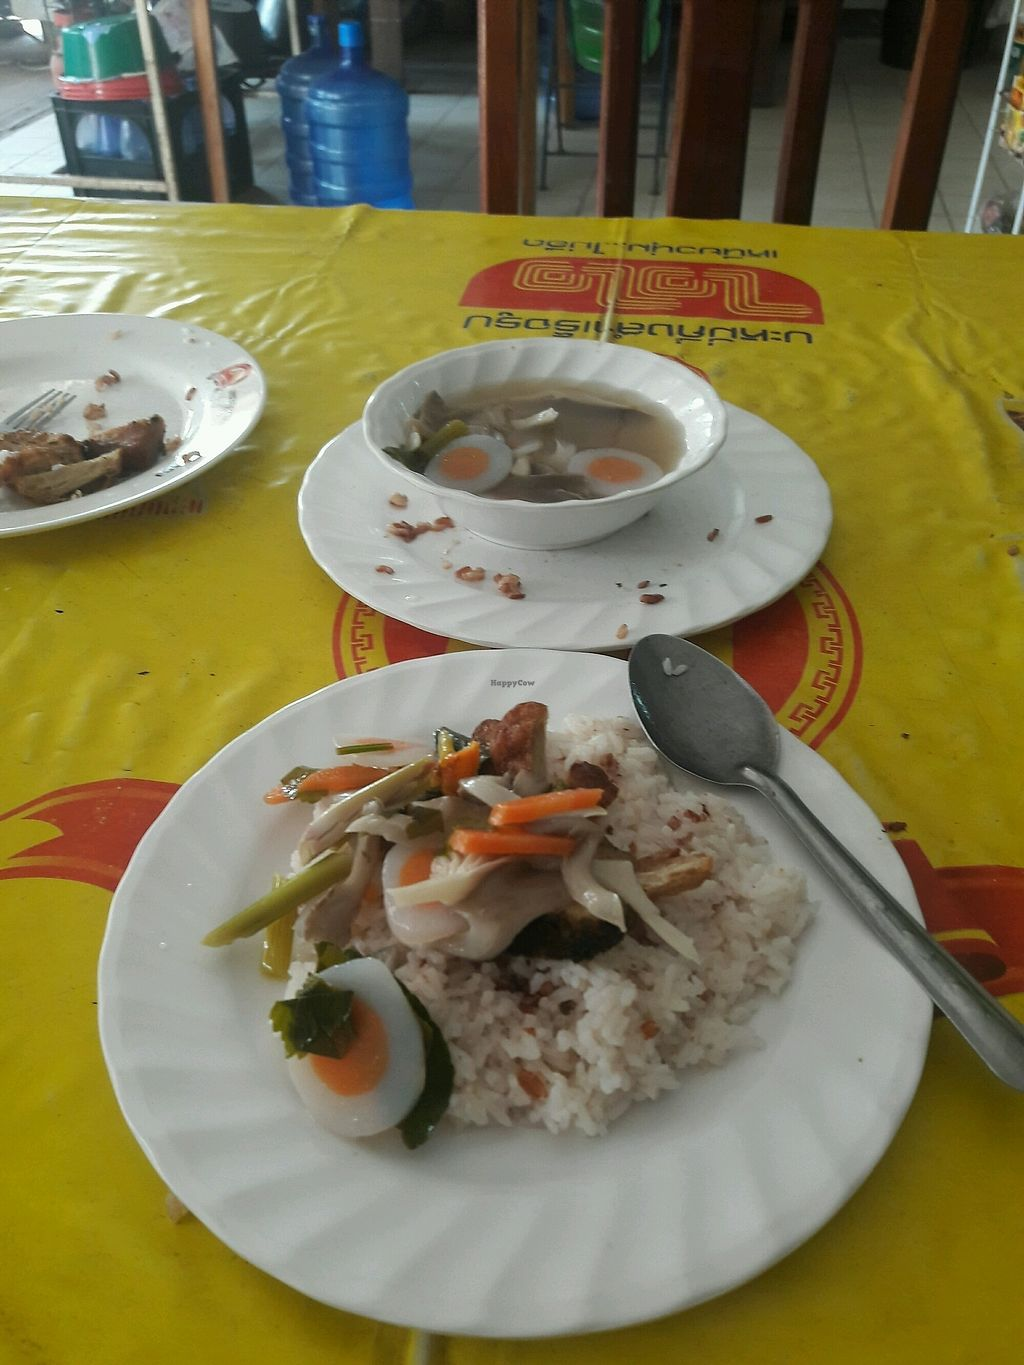 """Photo of Veg Restaurant  by <a href=""""/members/profile/DanJy"""">DanJy</a> <br/>mock eggs and veg with rice <br/> February 8, 2018  - <a href='/contact/abuse/image/111569/356357'>Report</a>"""